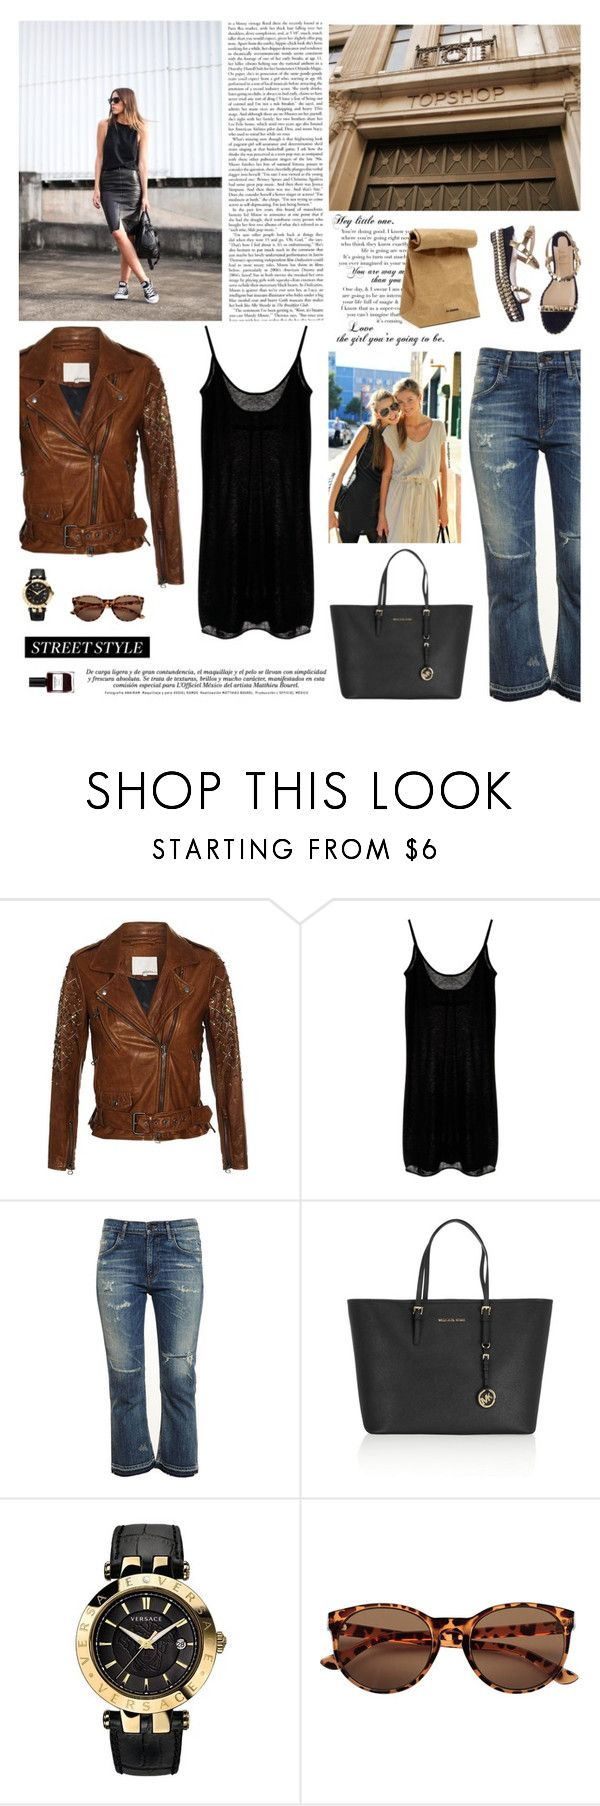 """""""goodbye monday"""" by divadiscodiva ❤ liked on Polyvore featuring 3.1 Phillip Lim, Jil Sander, Enza Costa, Citizens of Humanity, MICHAEL Michael Kors and Versace"""